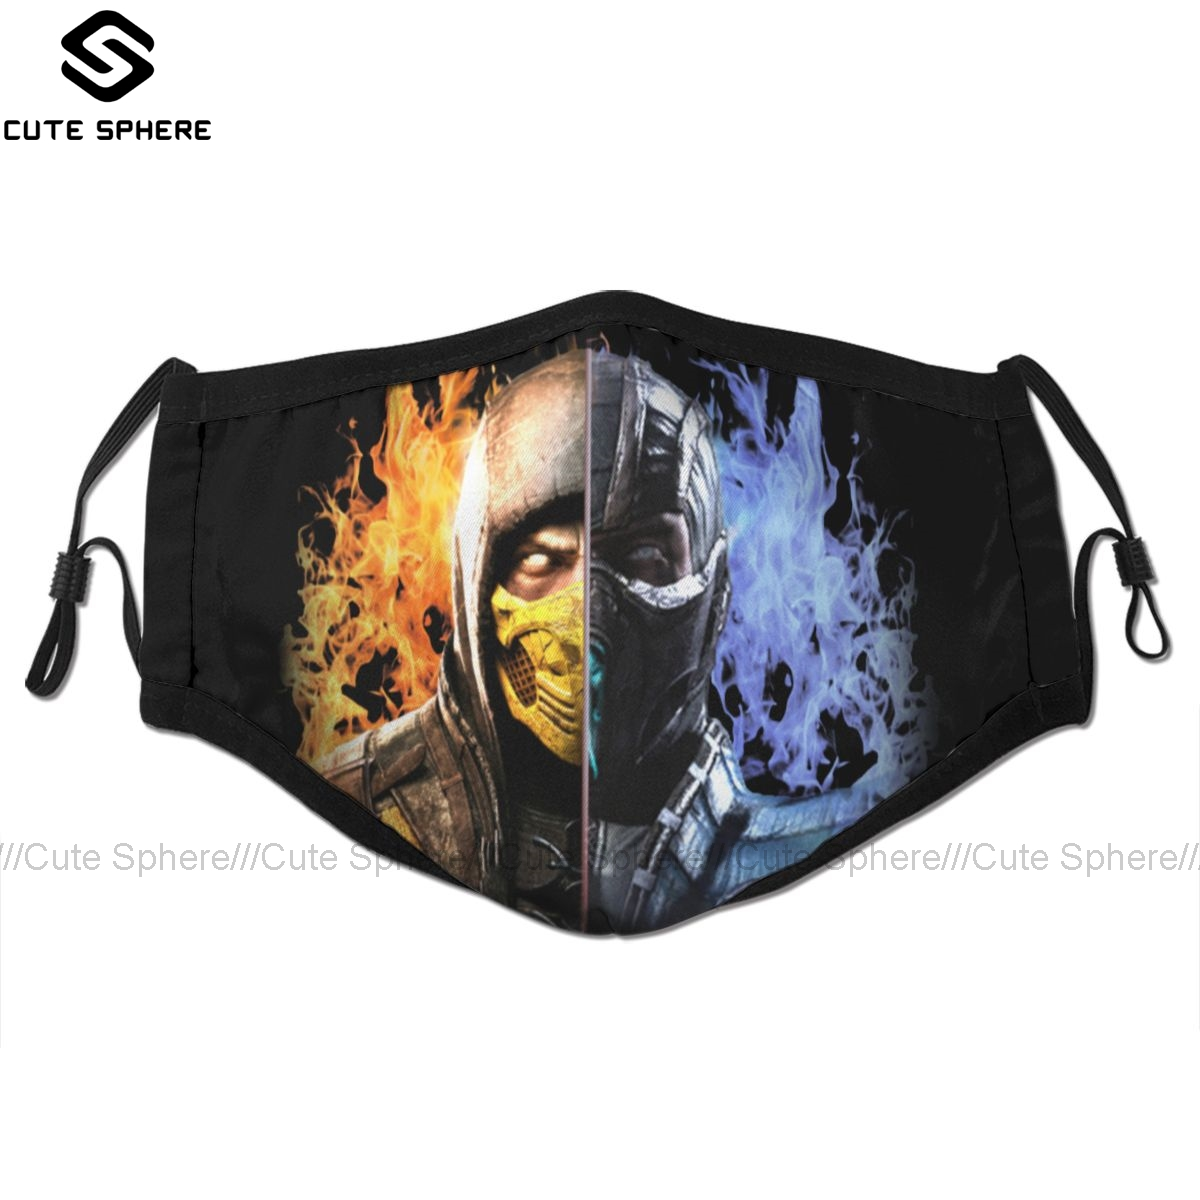 Sub Zero Mouth Face Mask Mortal Kombat X Facial Mask Funny Kawai With 2 Filters For Adult